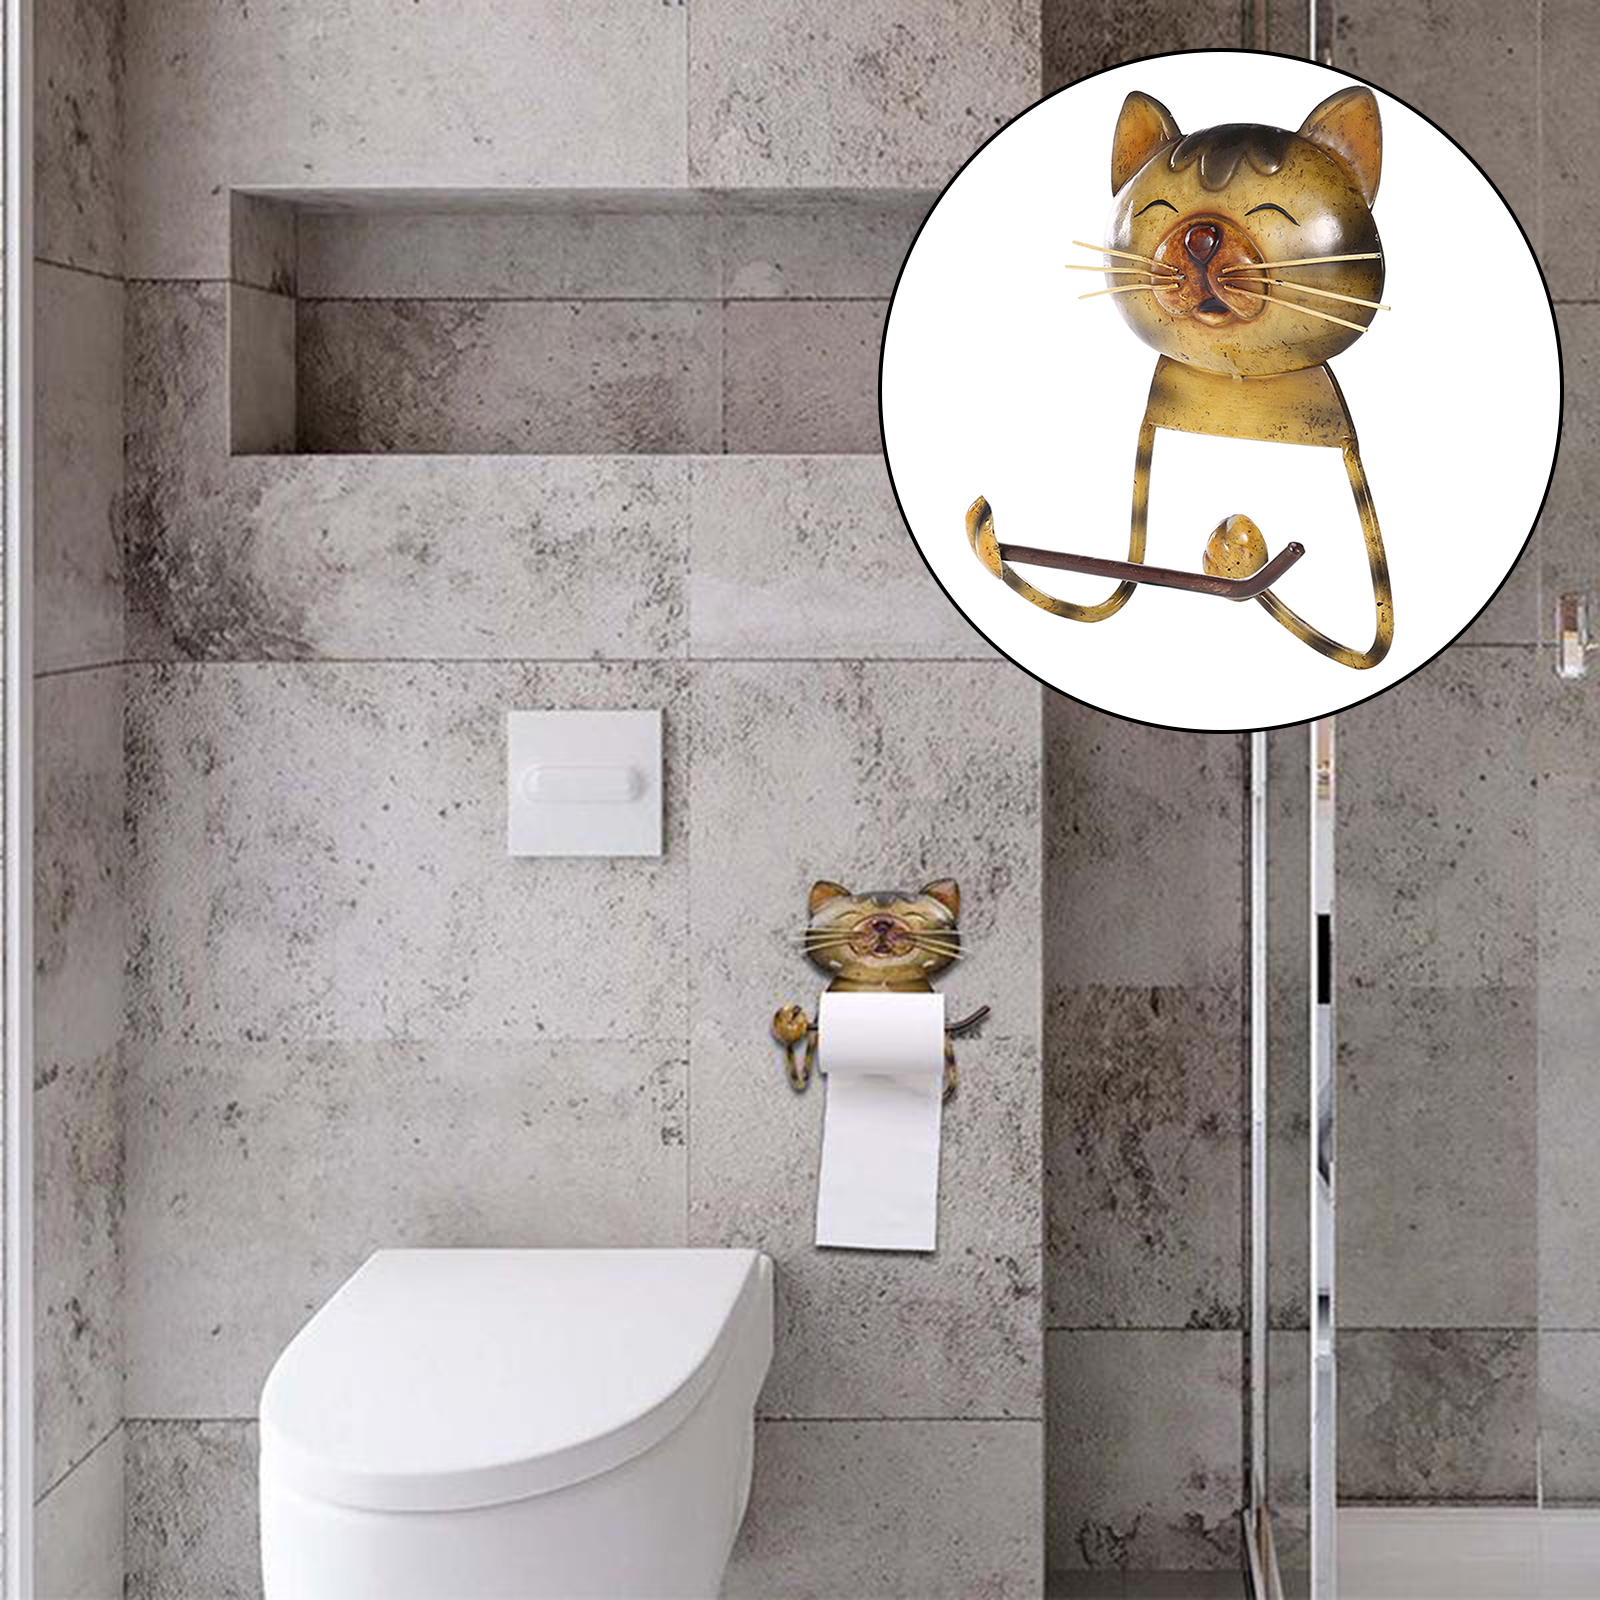 Toilet Wall Mount Toilet Paper Holder Metal Cute Cat Bathroom Kitchen Roll Paper Accessory Tissue Towel Holders